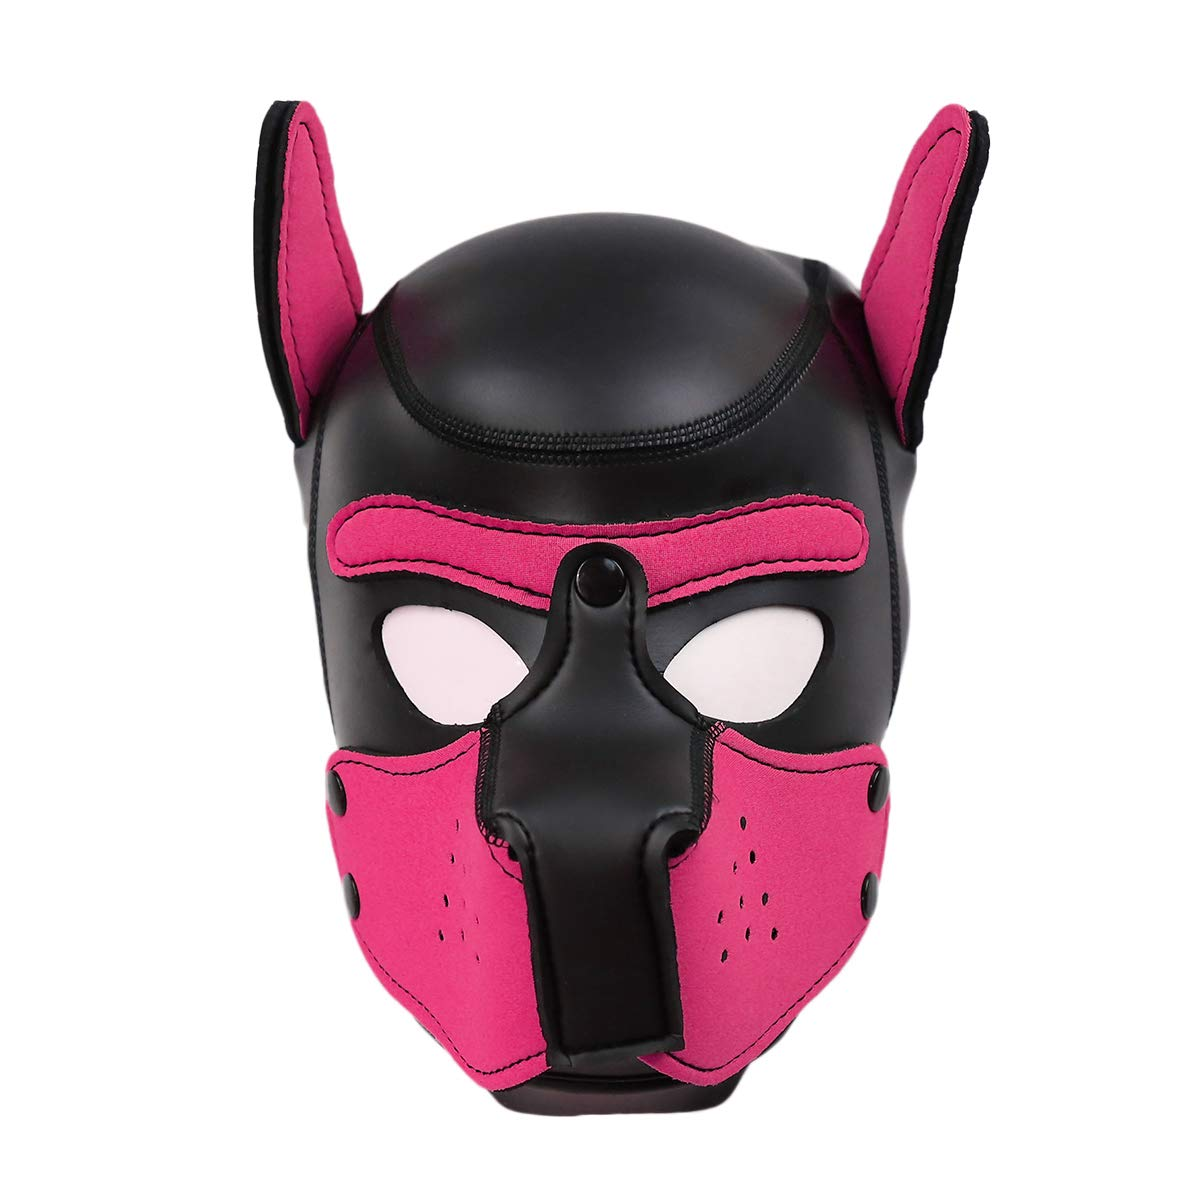 XuSha Neoprene Puppy Mask Dog Hood Pet Hat Removable Mouth Cosplay Party Props Costume Dog Head Mask Puppy Mask Halloween Medium Pink